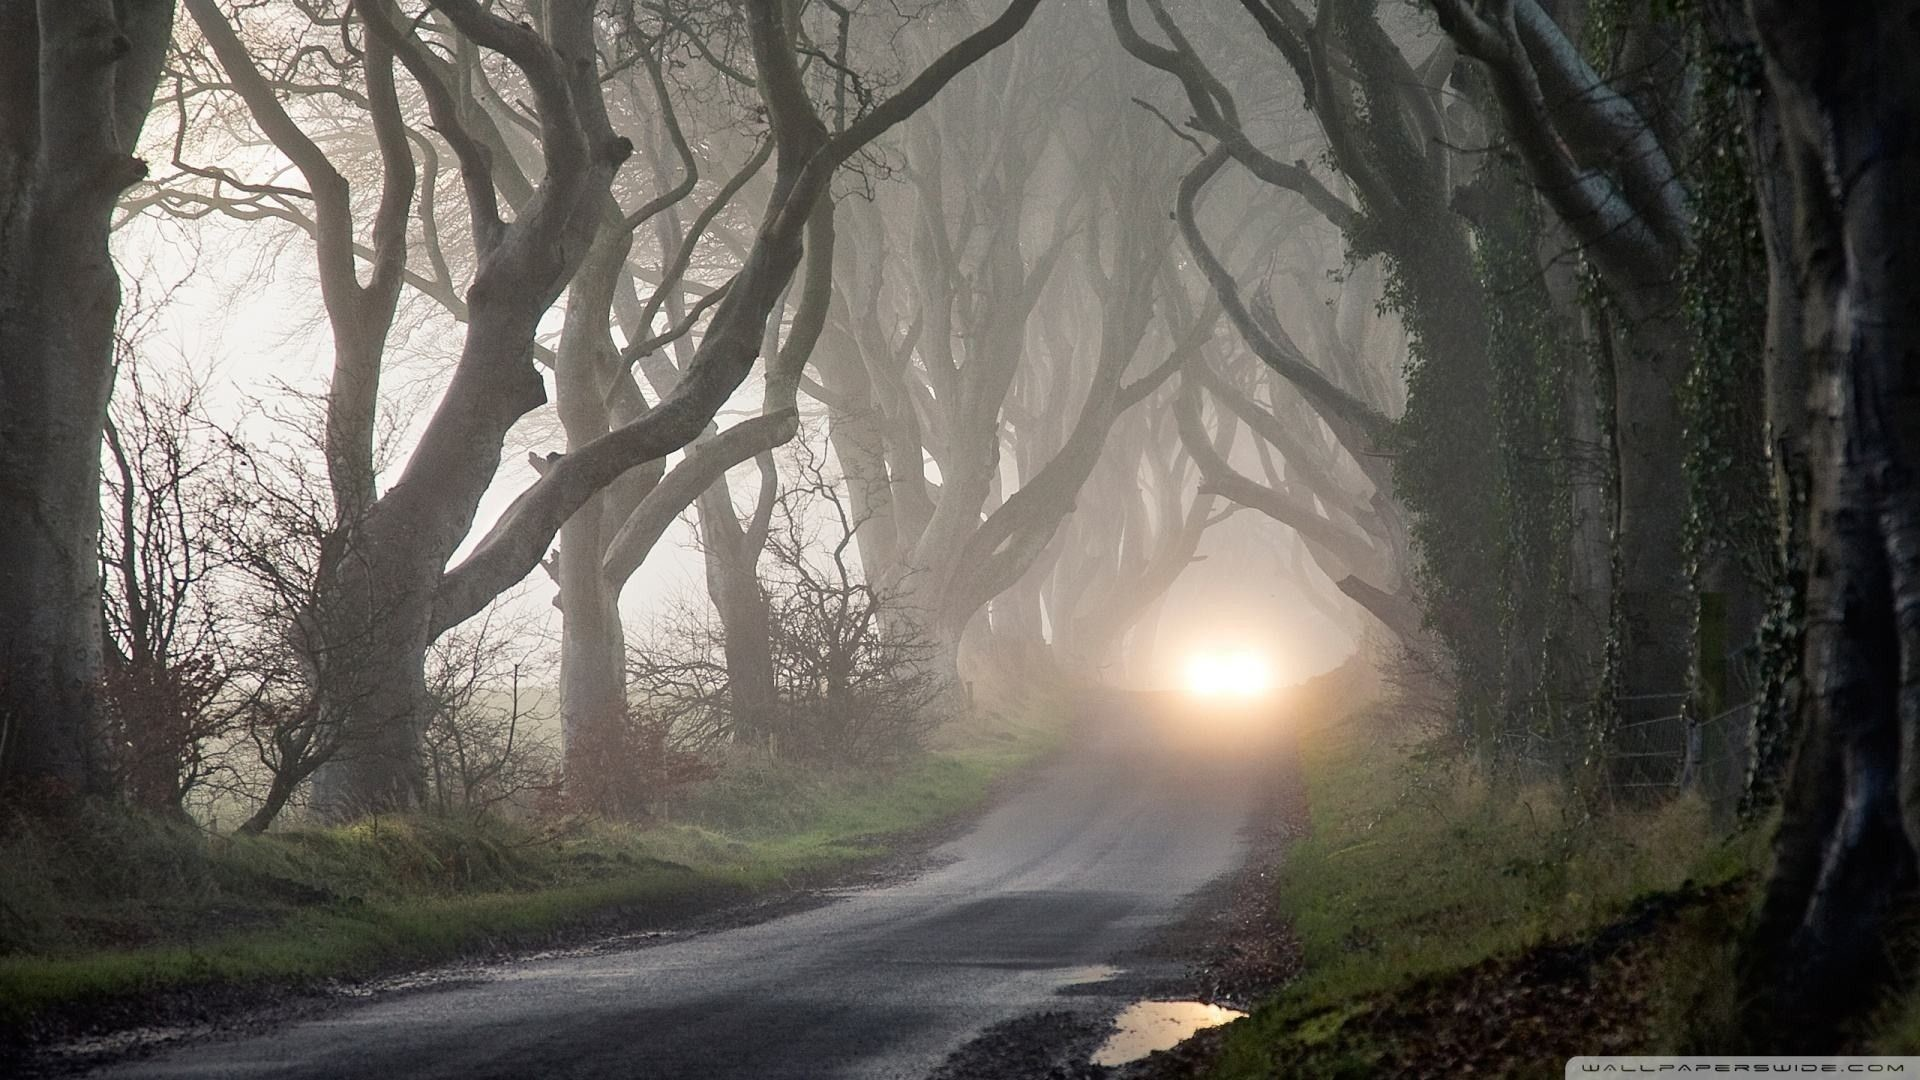 Res: 1920x1080,  Wallpapers Backgrounds - Road Through Haunted Forest wallpaper